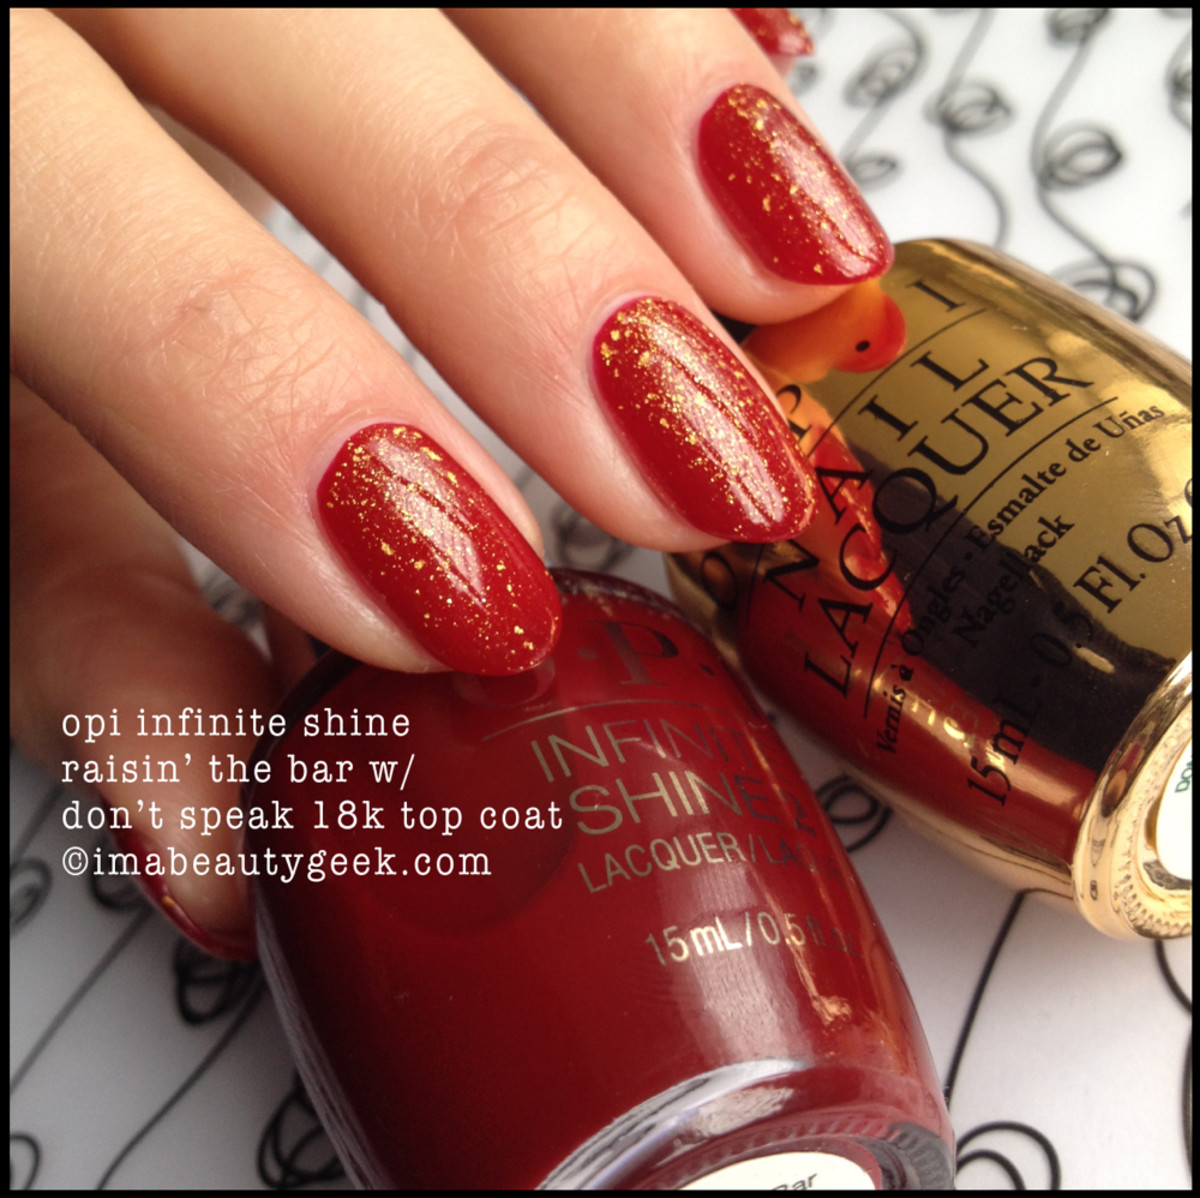 OPI Raisin The Bar Infinite Shine with top coat